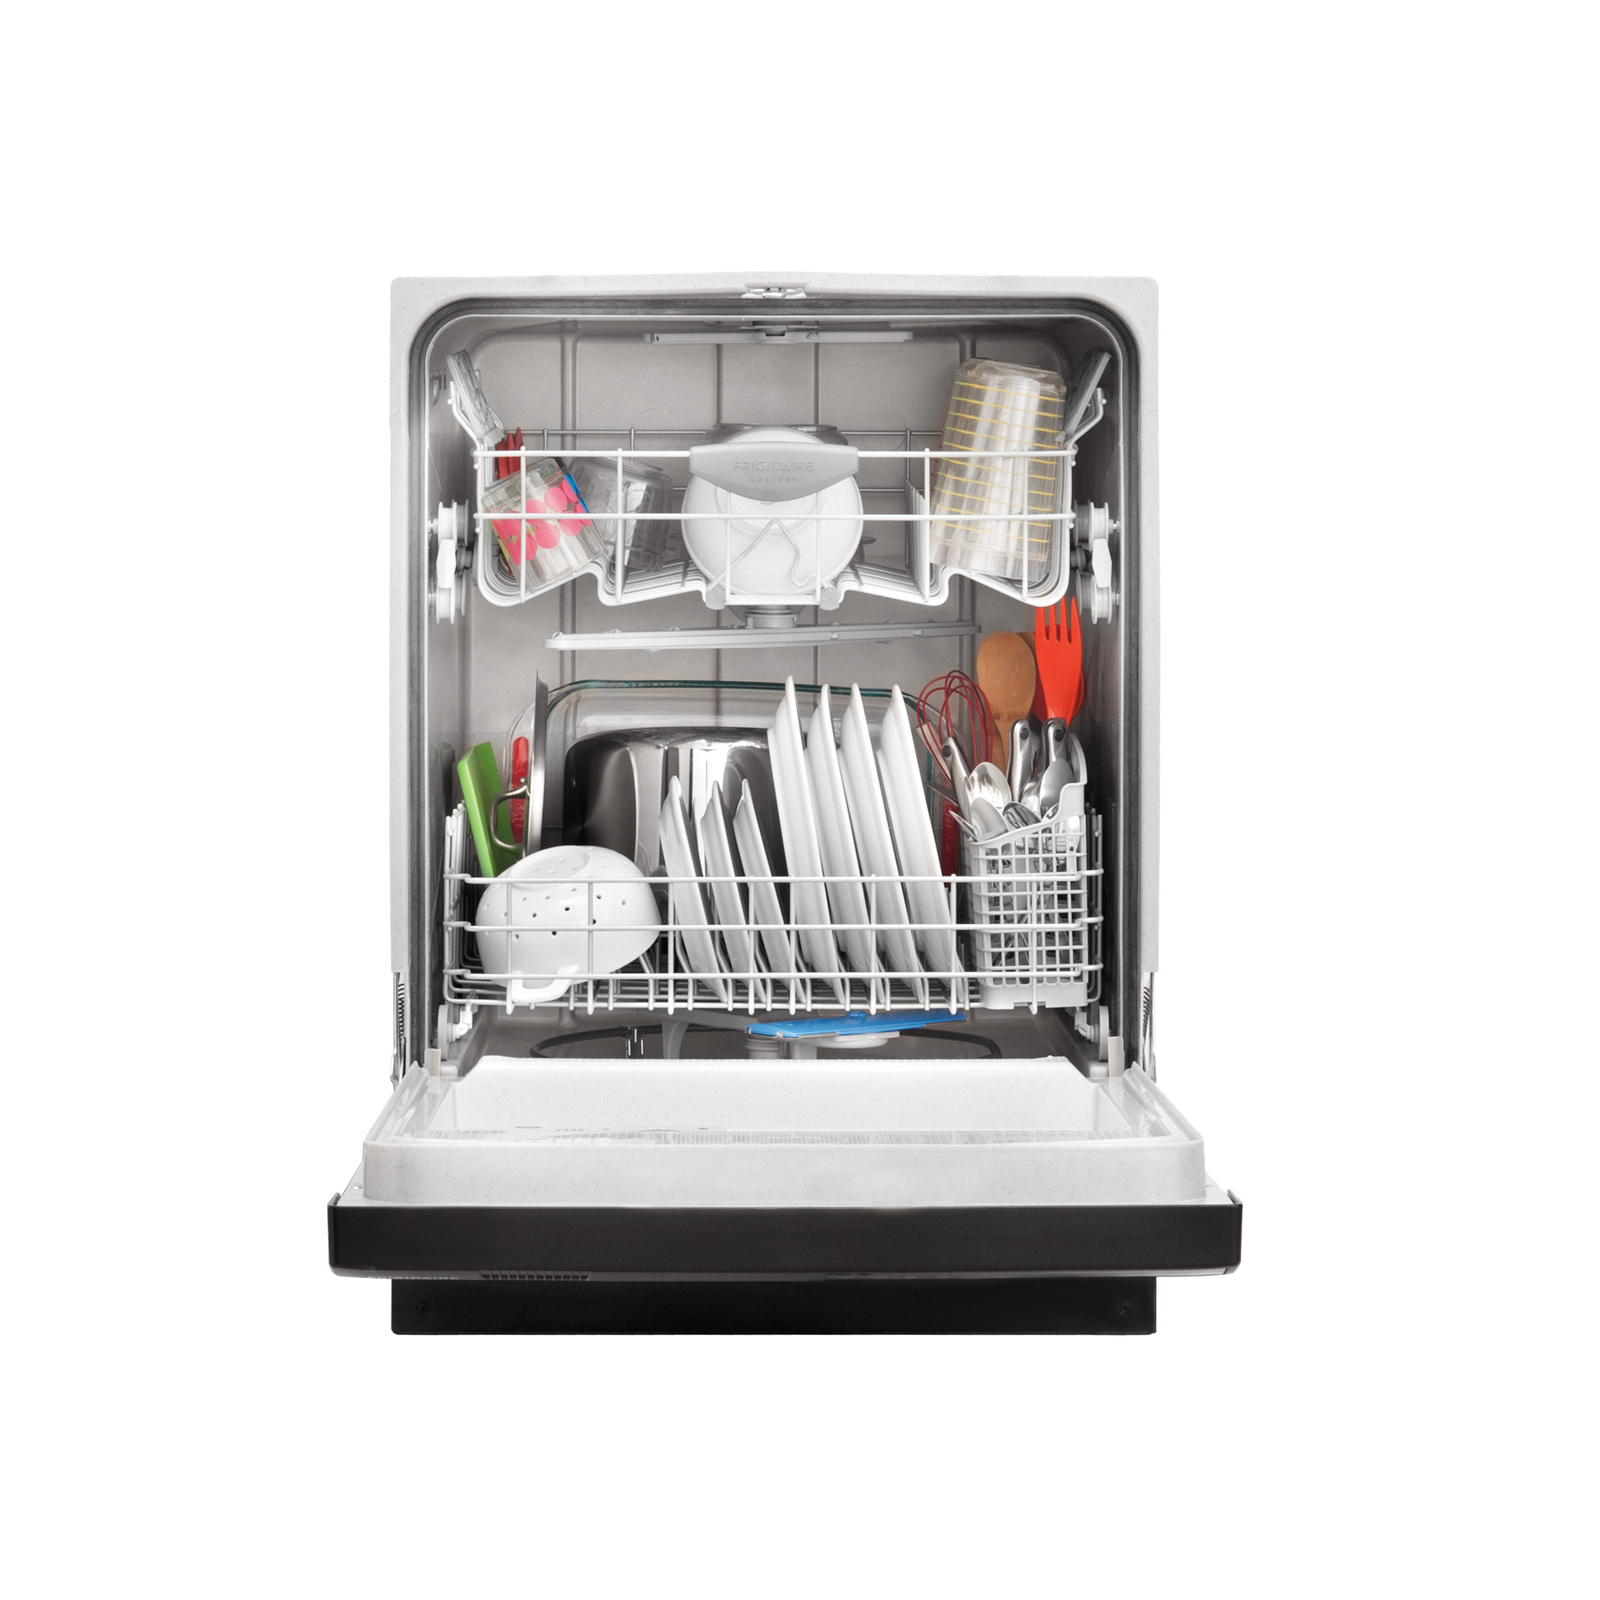 "Frigidaire Gallery Gallery 24"" Built-In Dishwasher w/ BladeSpray™ Wash System - Black"